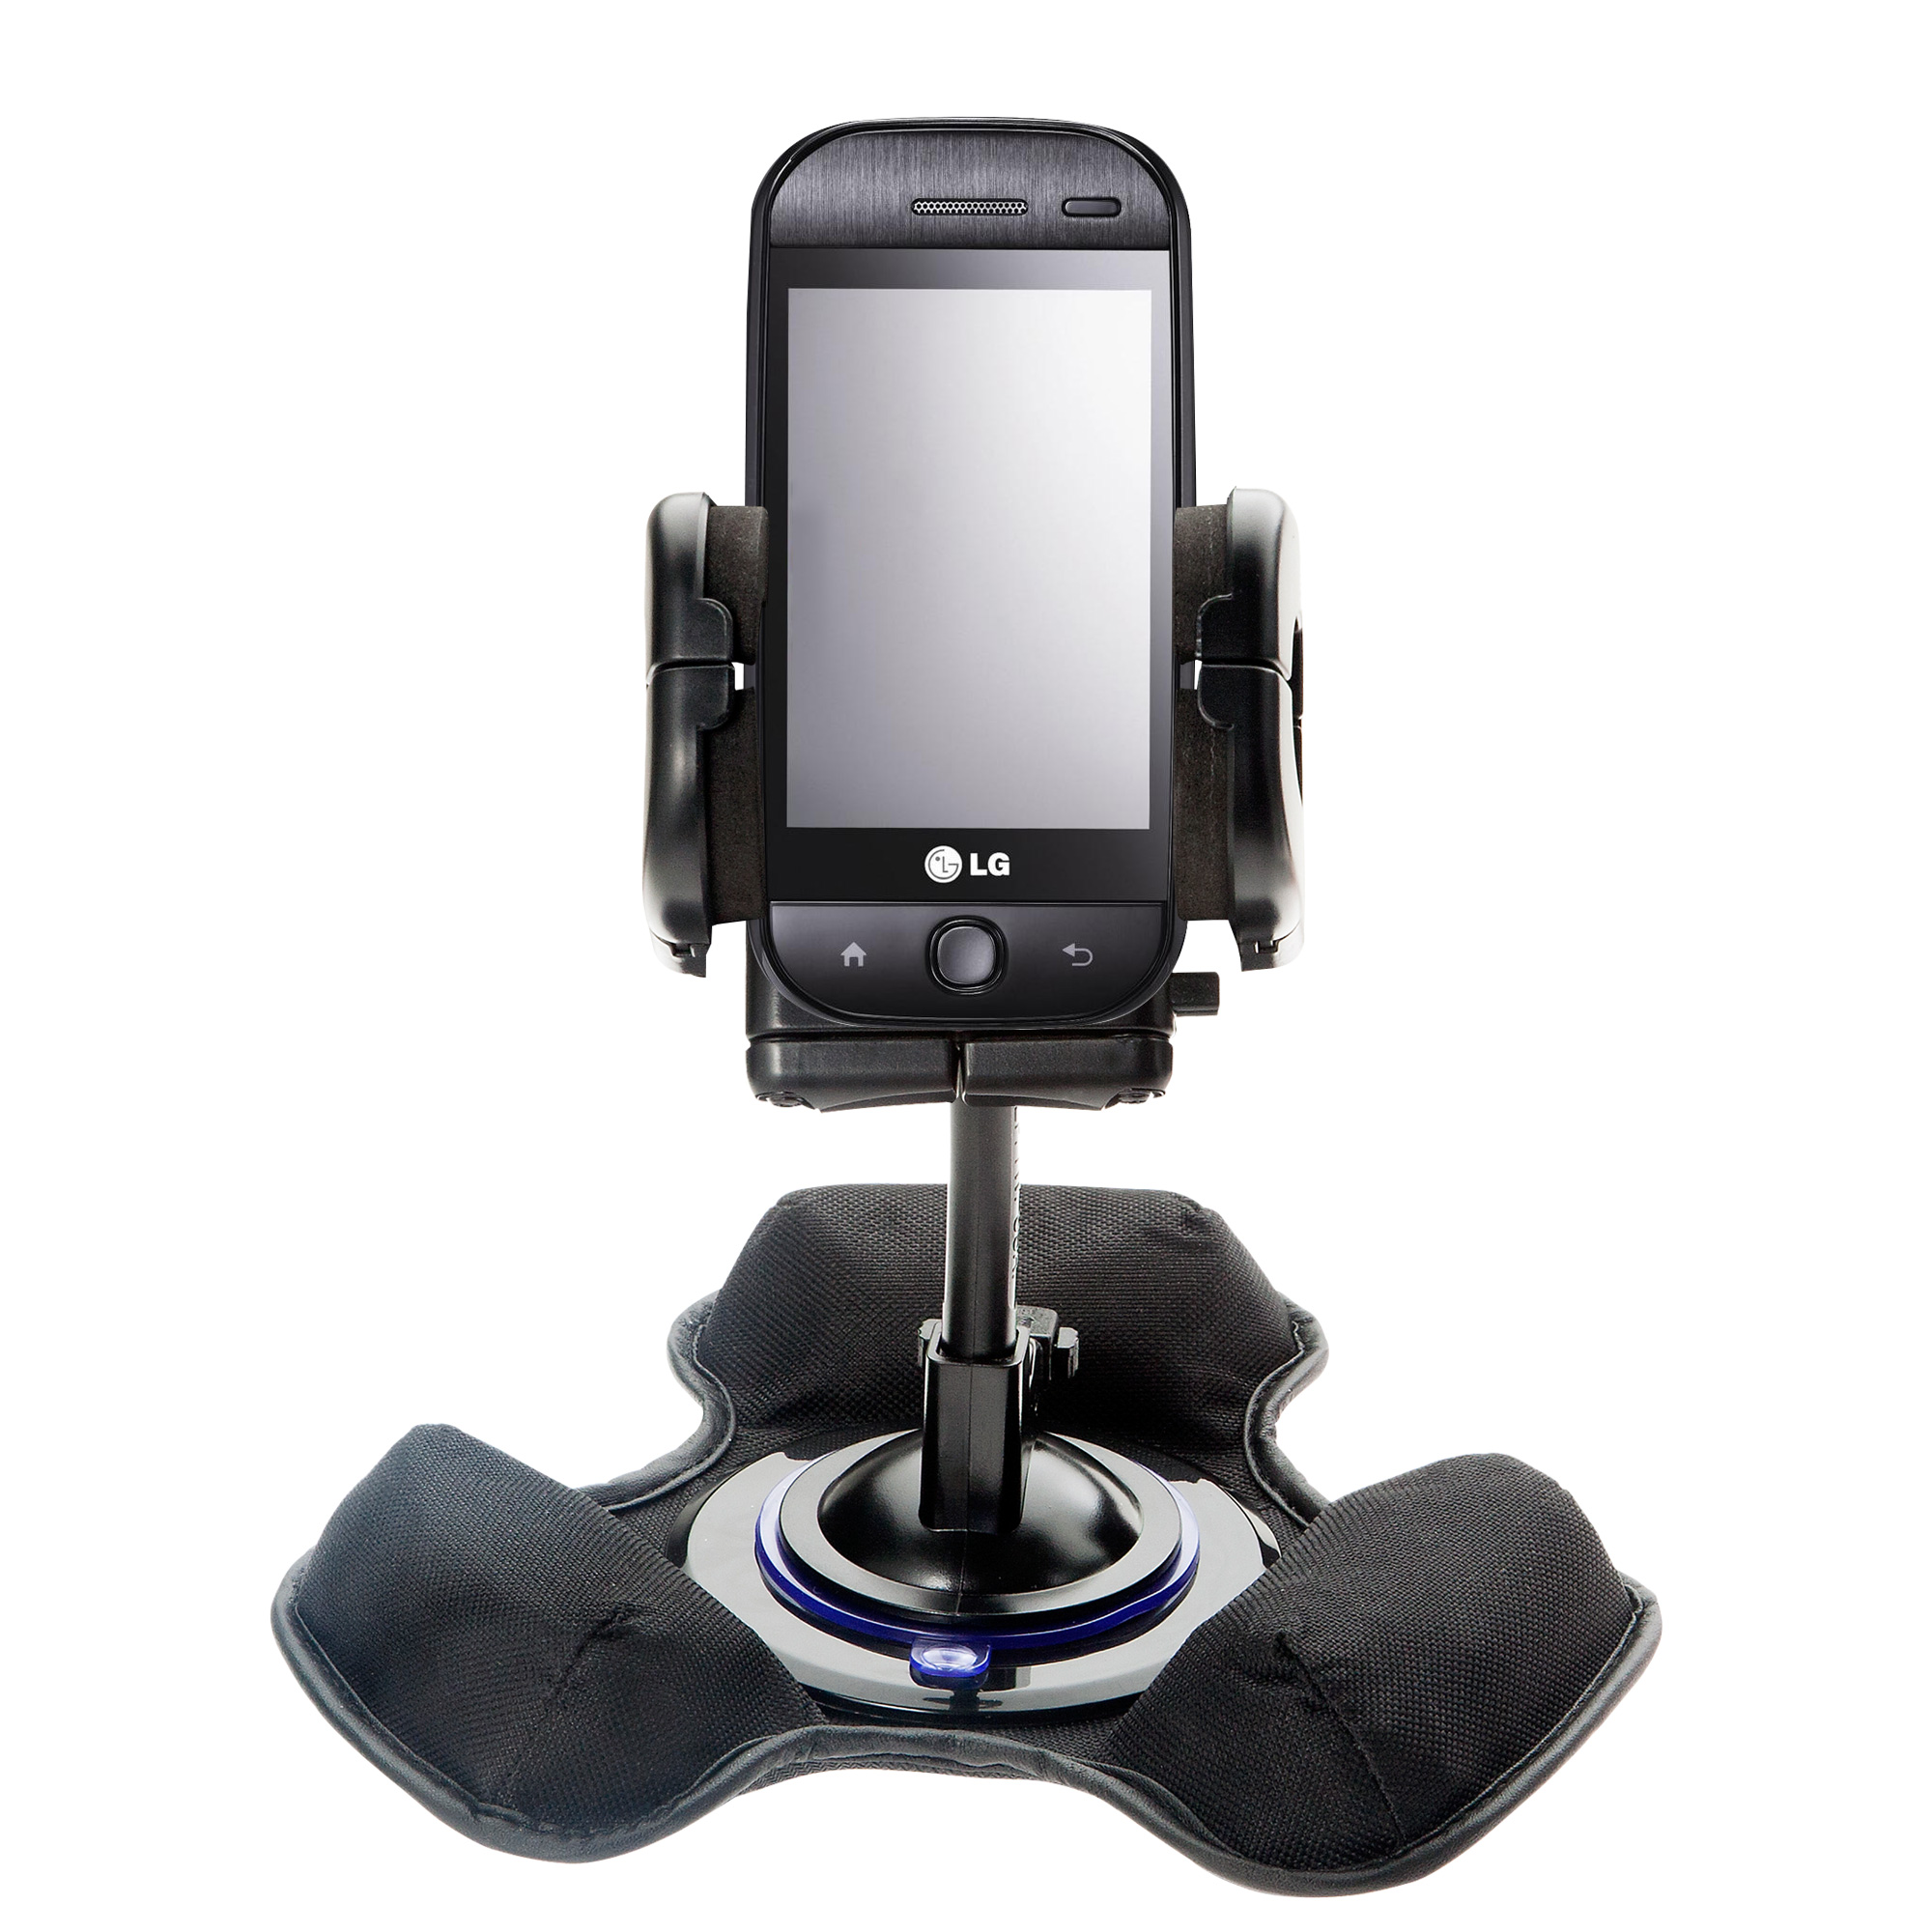 Dash and Windshield Holder compatible with the LG InTouch Max